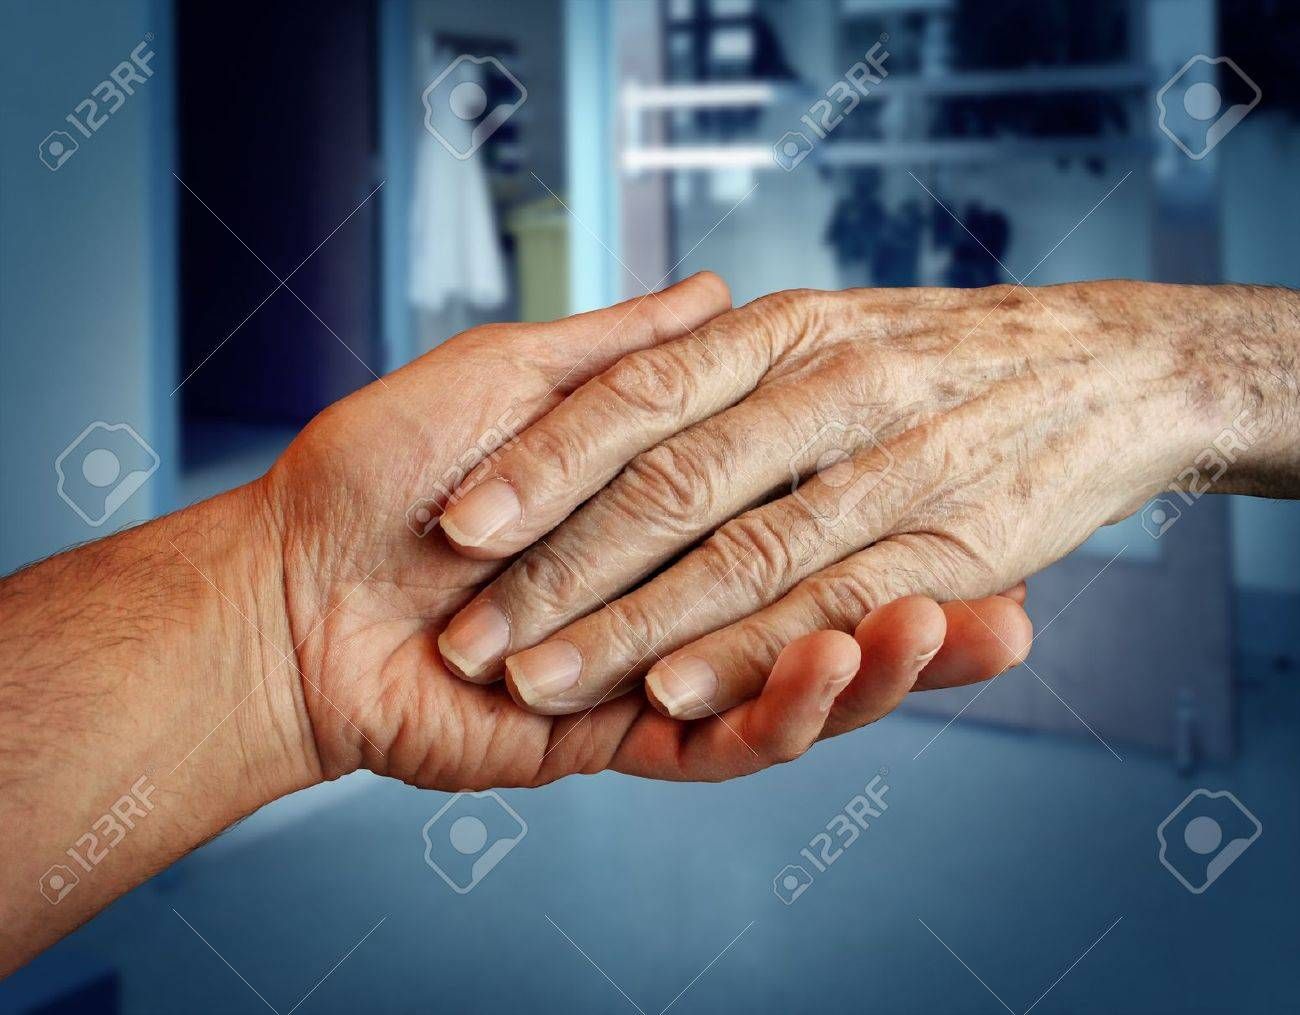 Elderly care and senior health services with the hand of a young person holding and helping an old and aging retired patient needing in home medical help due to aging and memory loss in a hospital background Stock Photo - 17811646